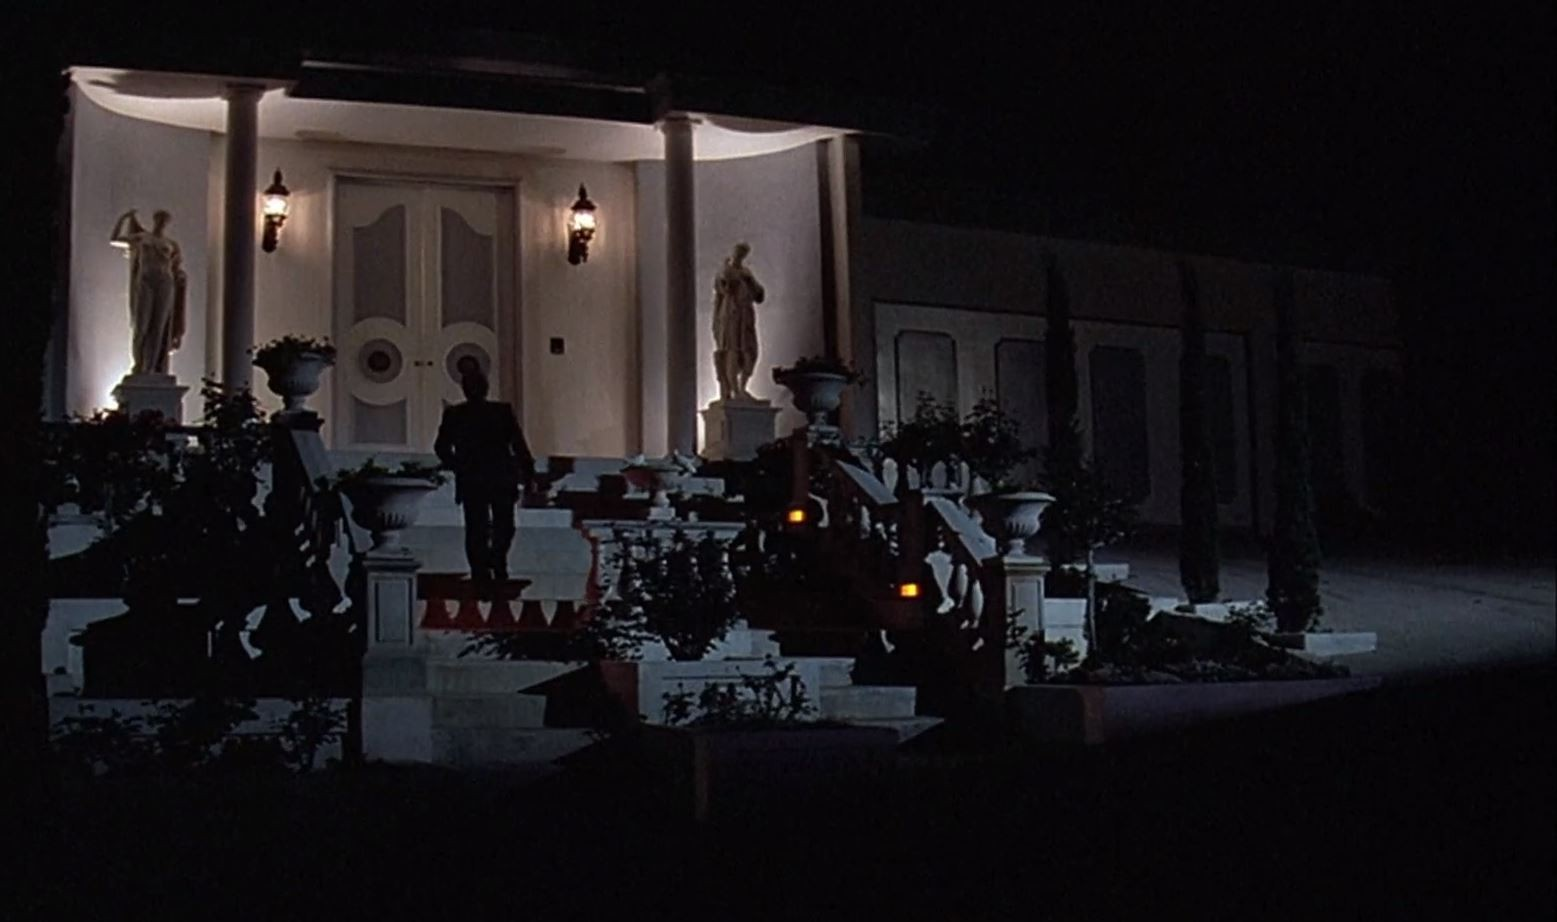 Manny's house from Scarface